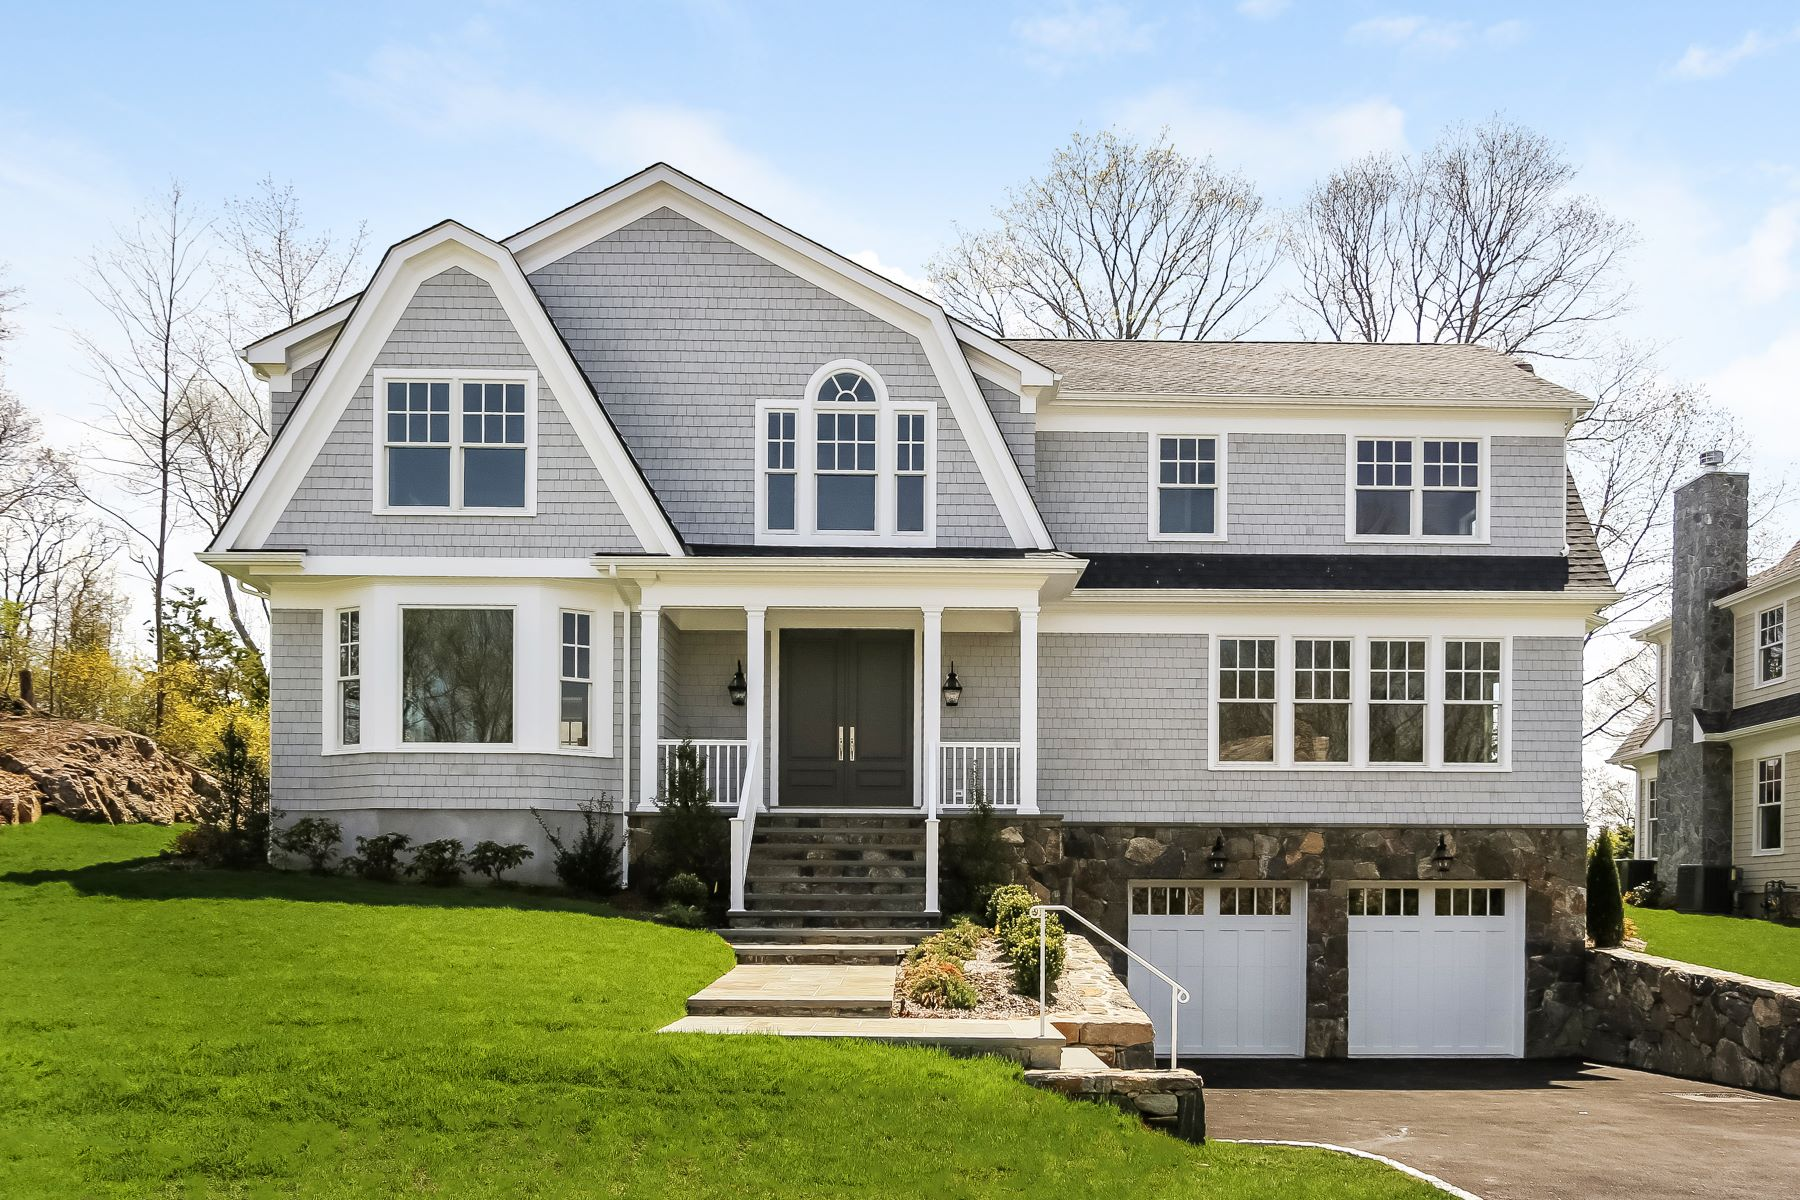 Single Family Homes for Active at 3 Gray Rock Drive Harrison, New York 10528 United States